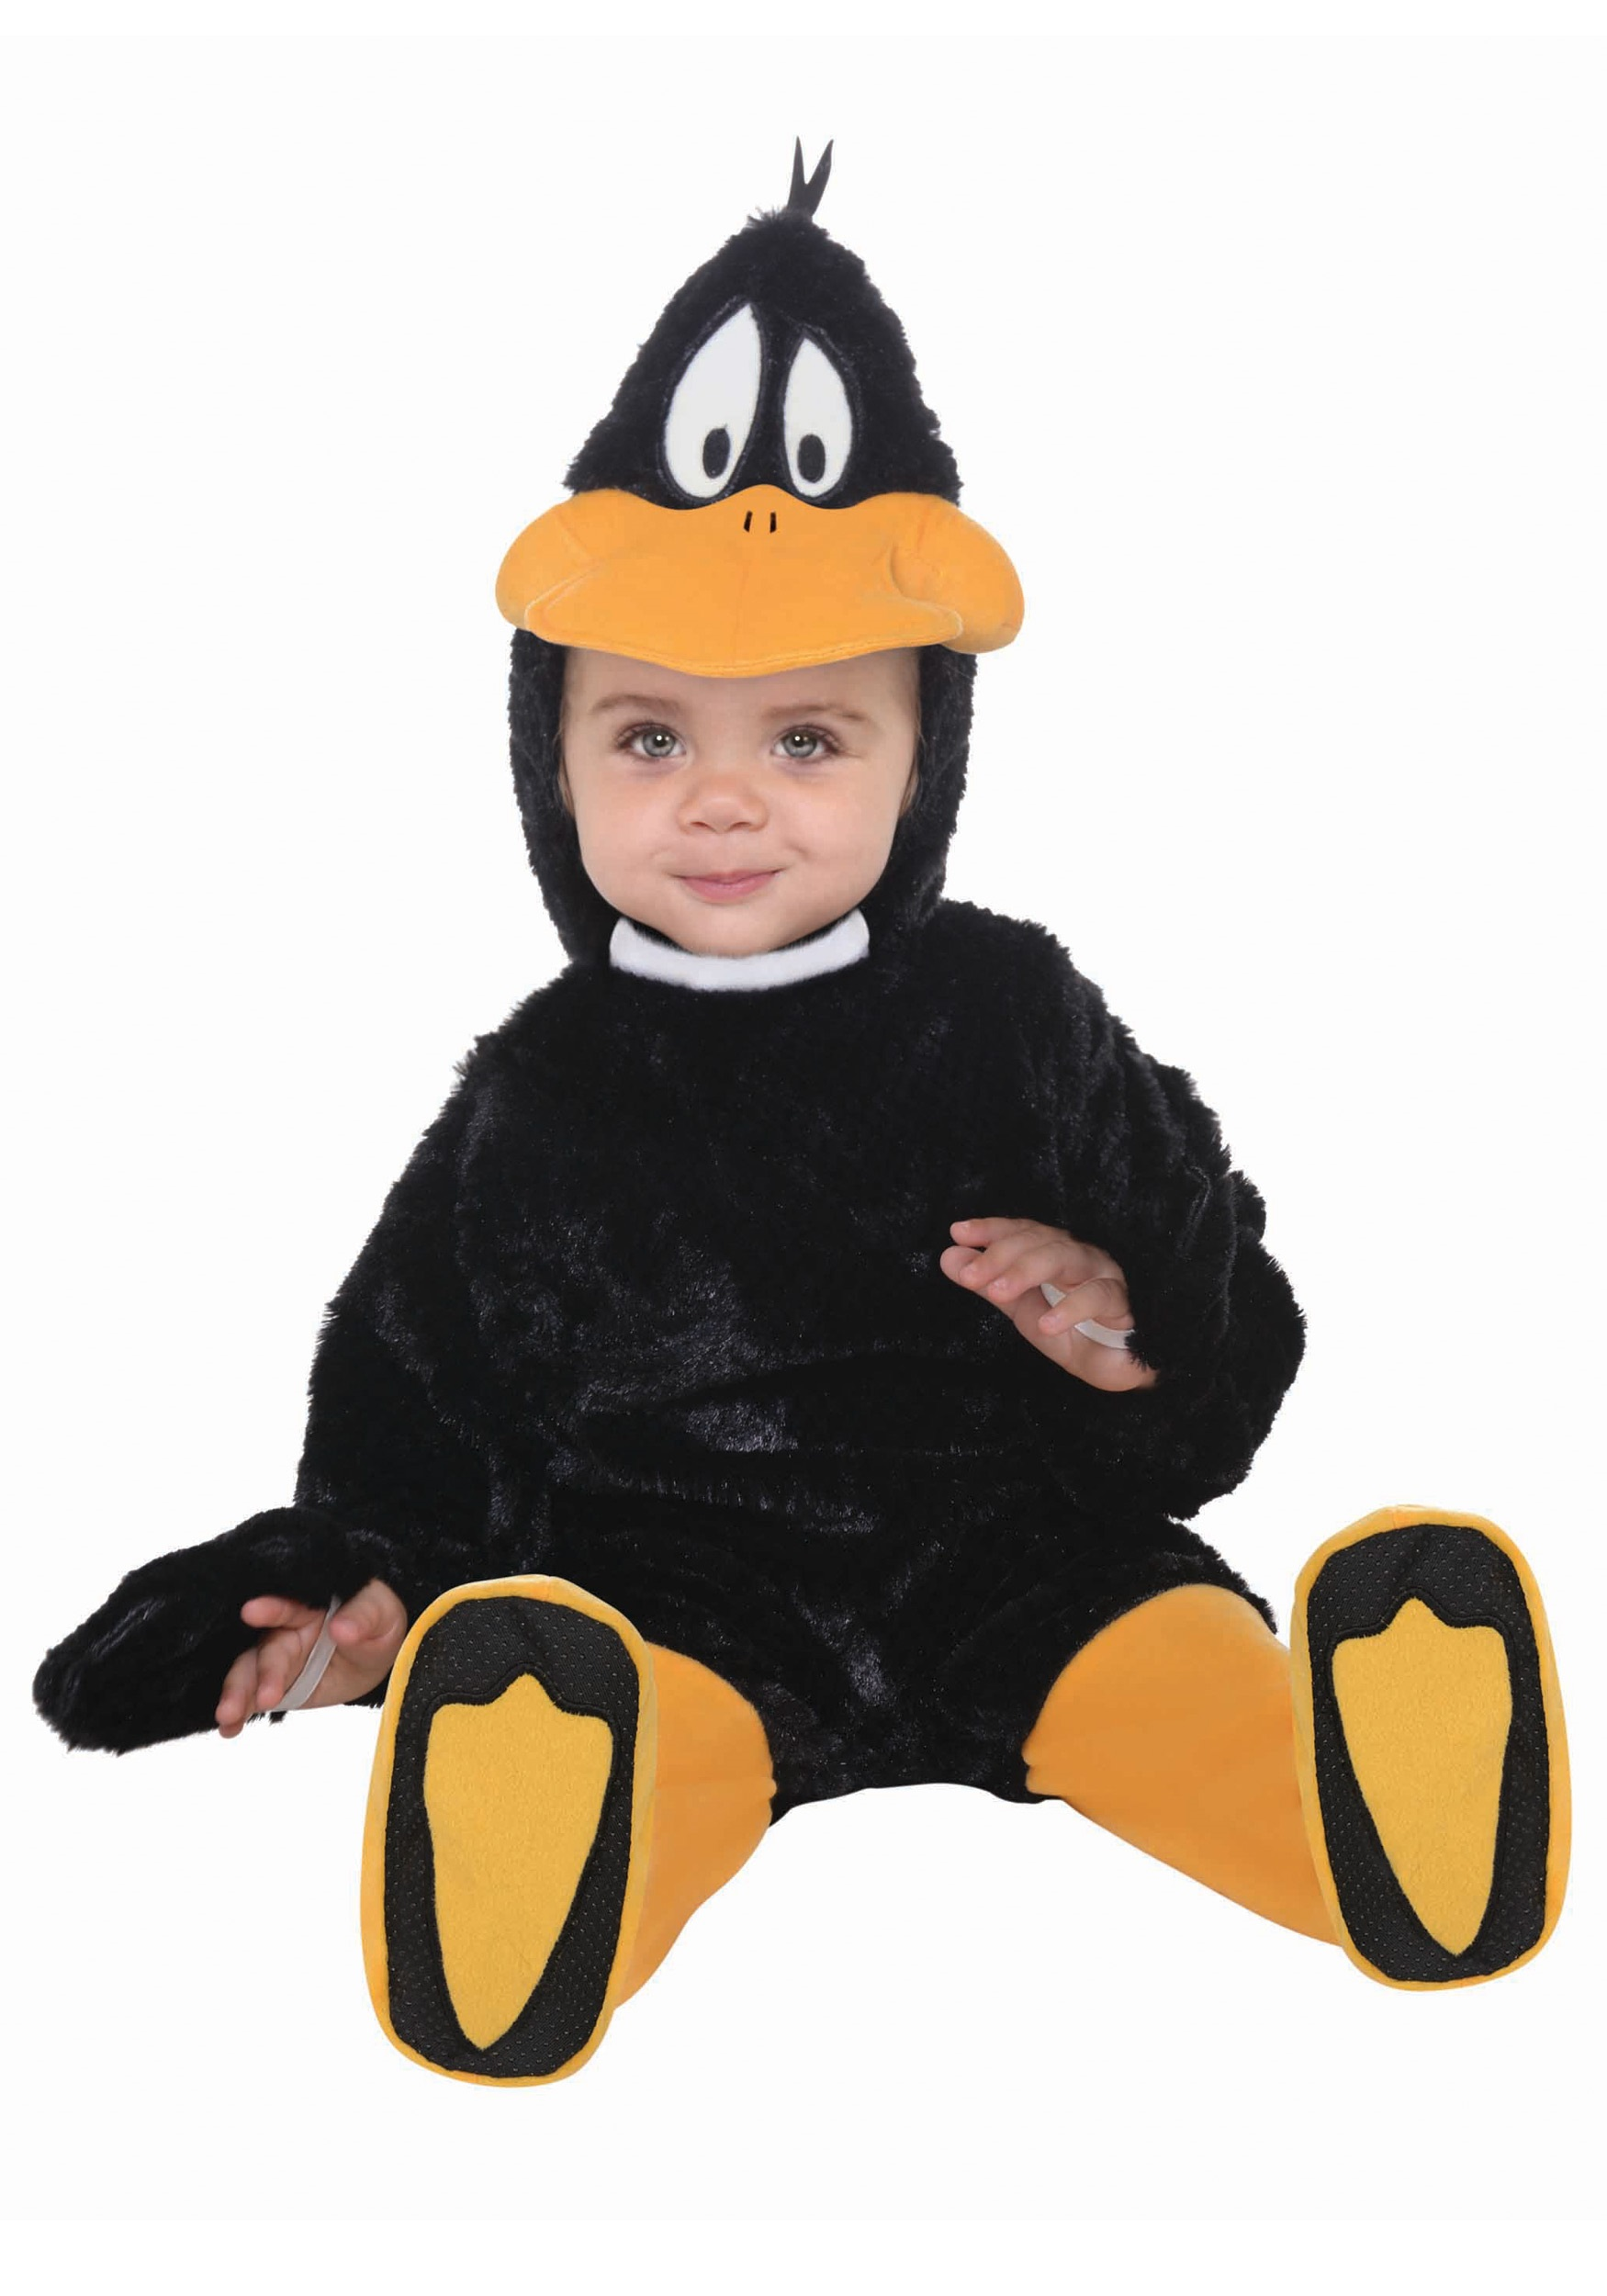 Infant Daffy Duck Costume  sc 1 st  Halloween Costumes : duffy halloween costume  - Germanpascual.Com